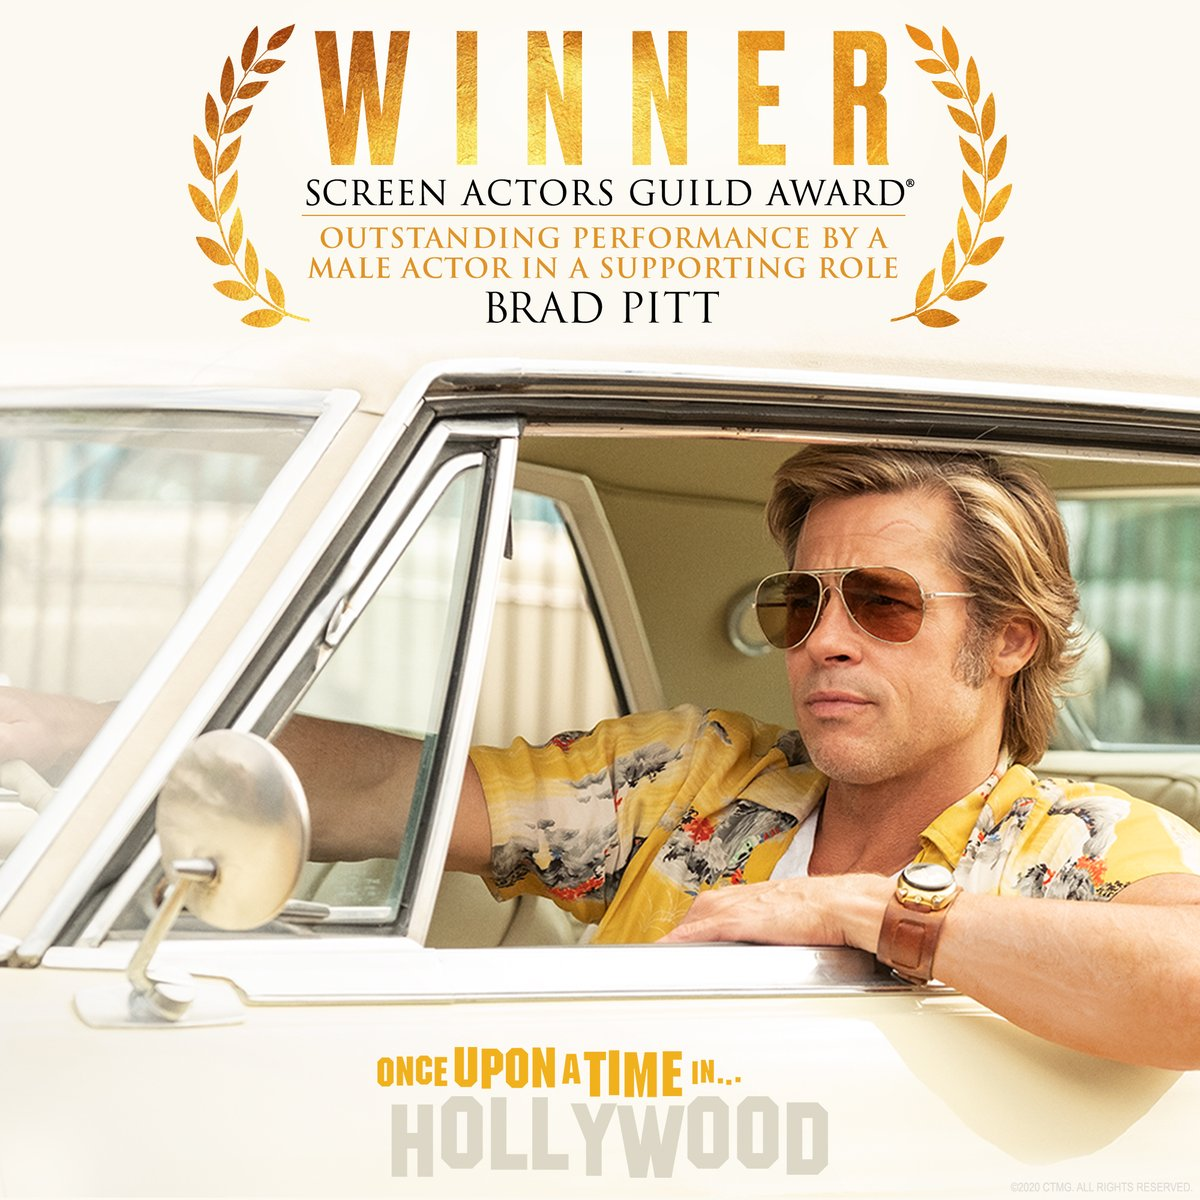 Congratulations to Brad Pitt on his #SAGAwards win for Outstanding Performance by a Male Actor in a Supporting Role in #OnceUponATimeInHollywood! <br>http://pic.twitter.com/yD2OO3kMWF